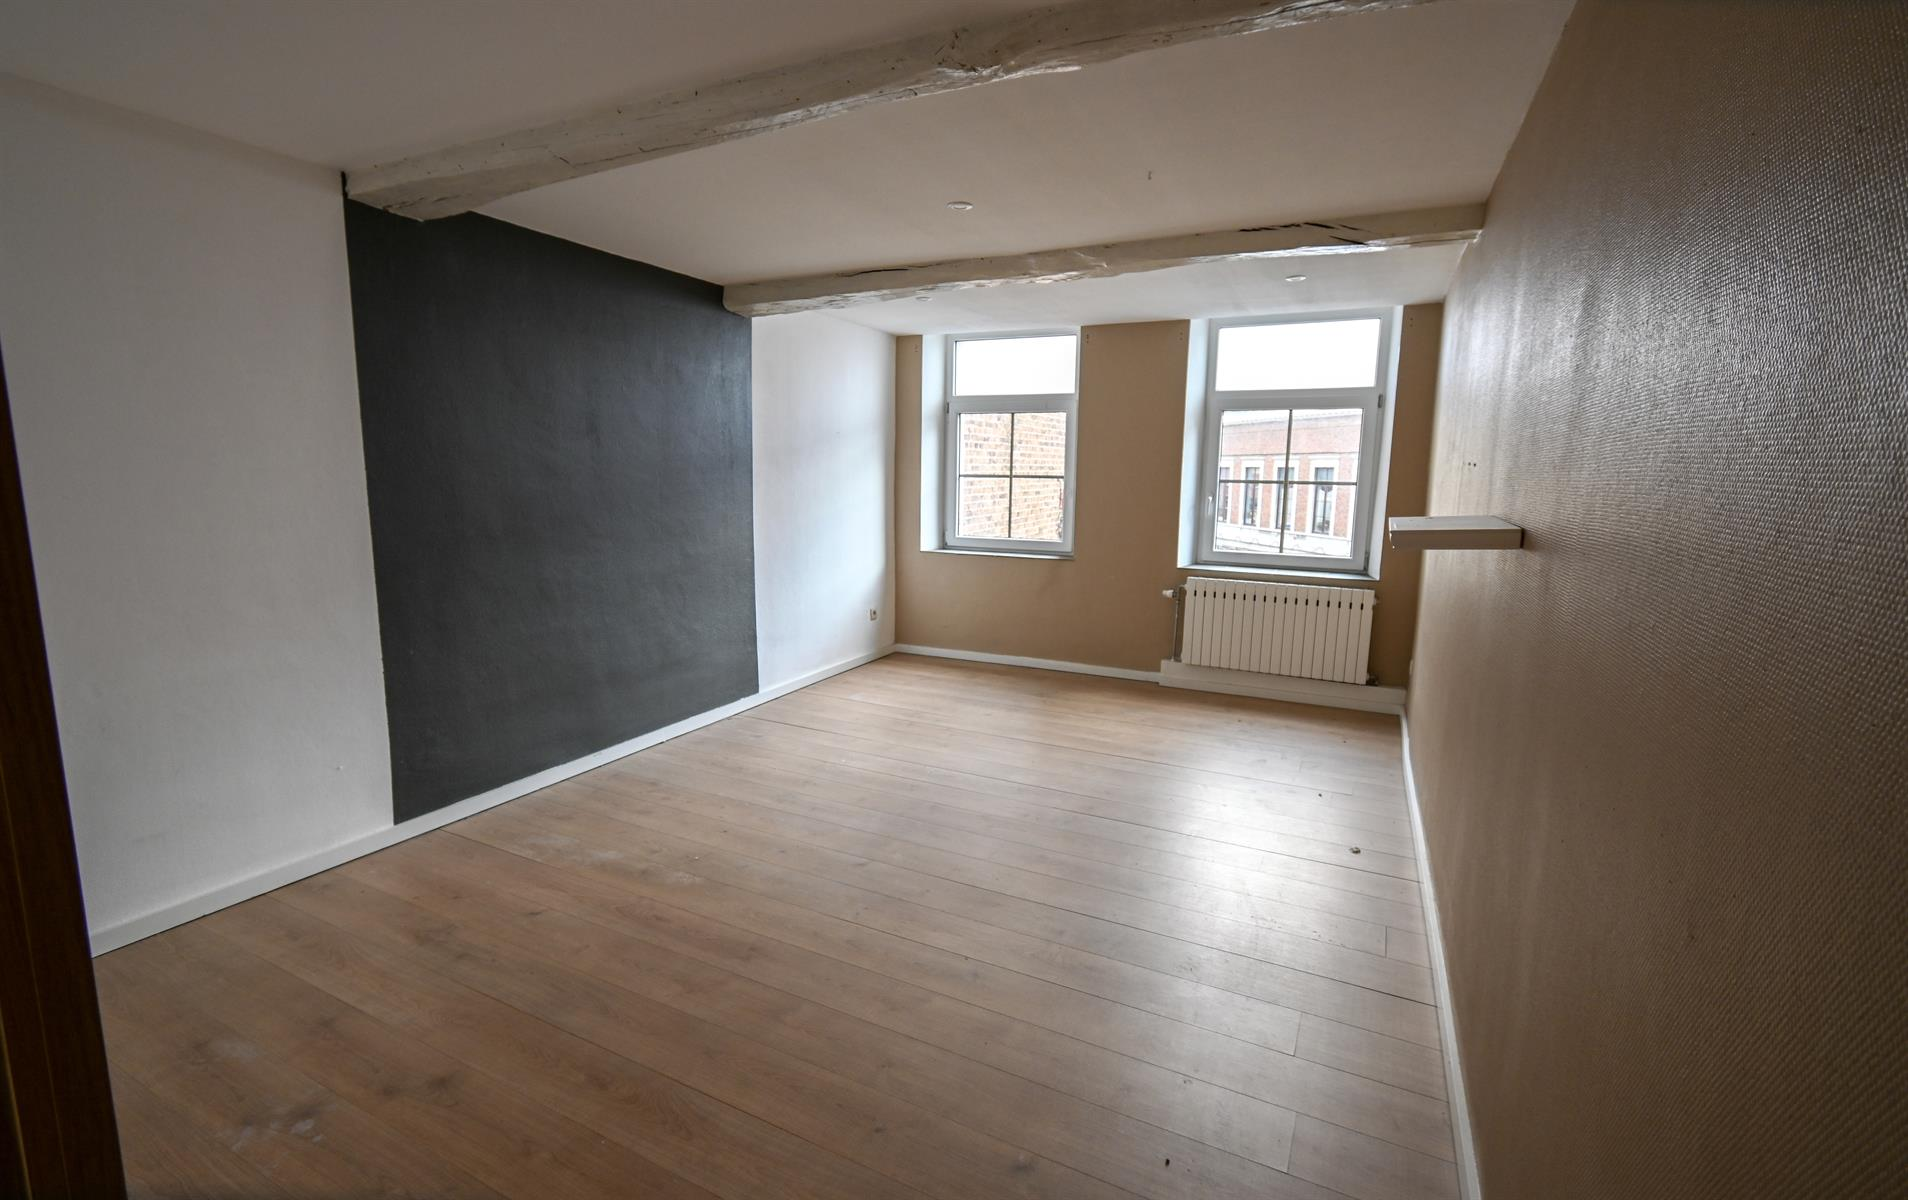 Appartement - Dison - #4371770-4